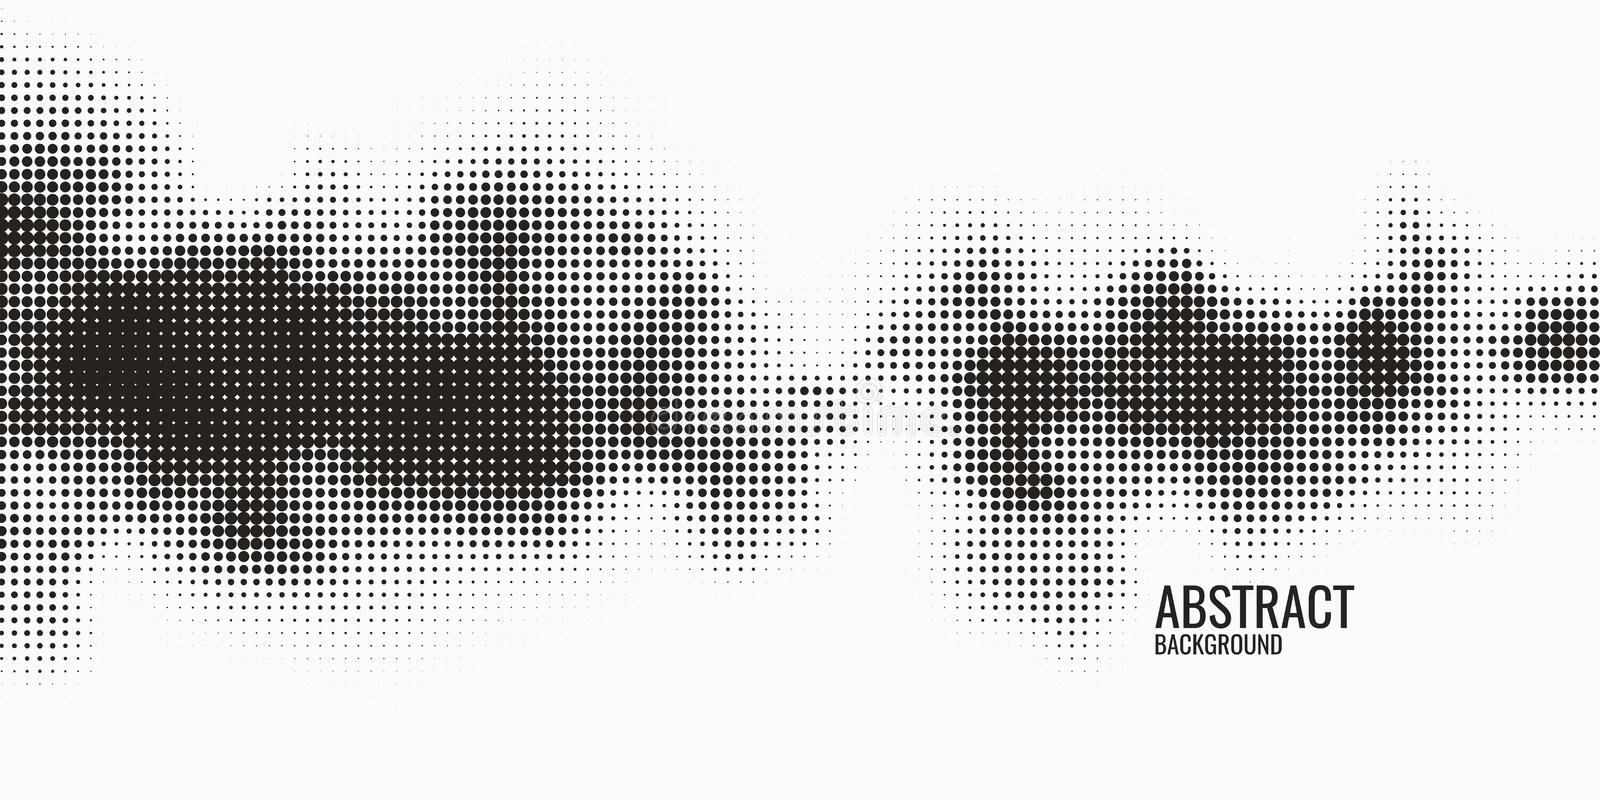 Monochrome printing raster, abstract vector halftone background. Black and white texture of dots. Monochrome printing raster. Abstract vector halftone stock illustration